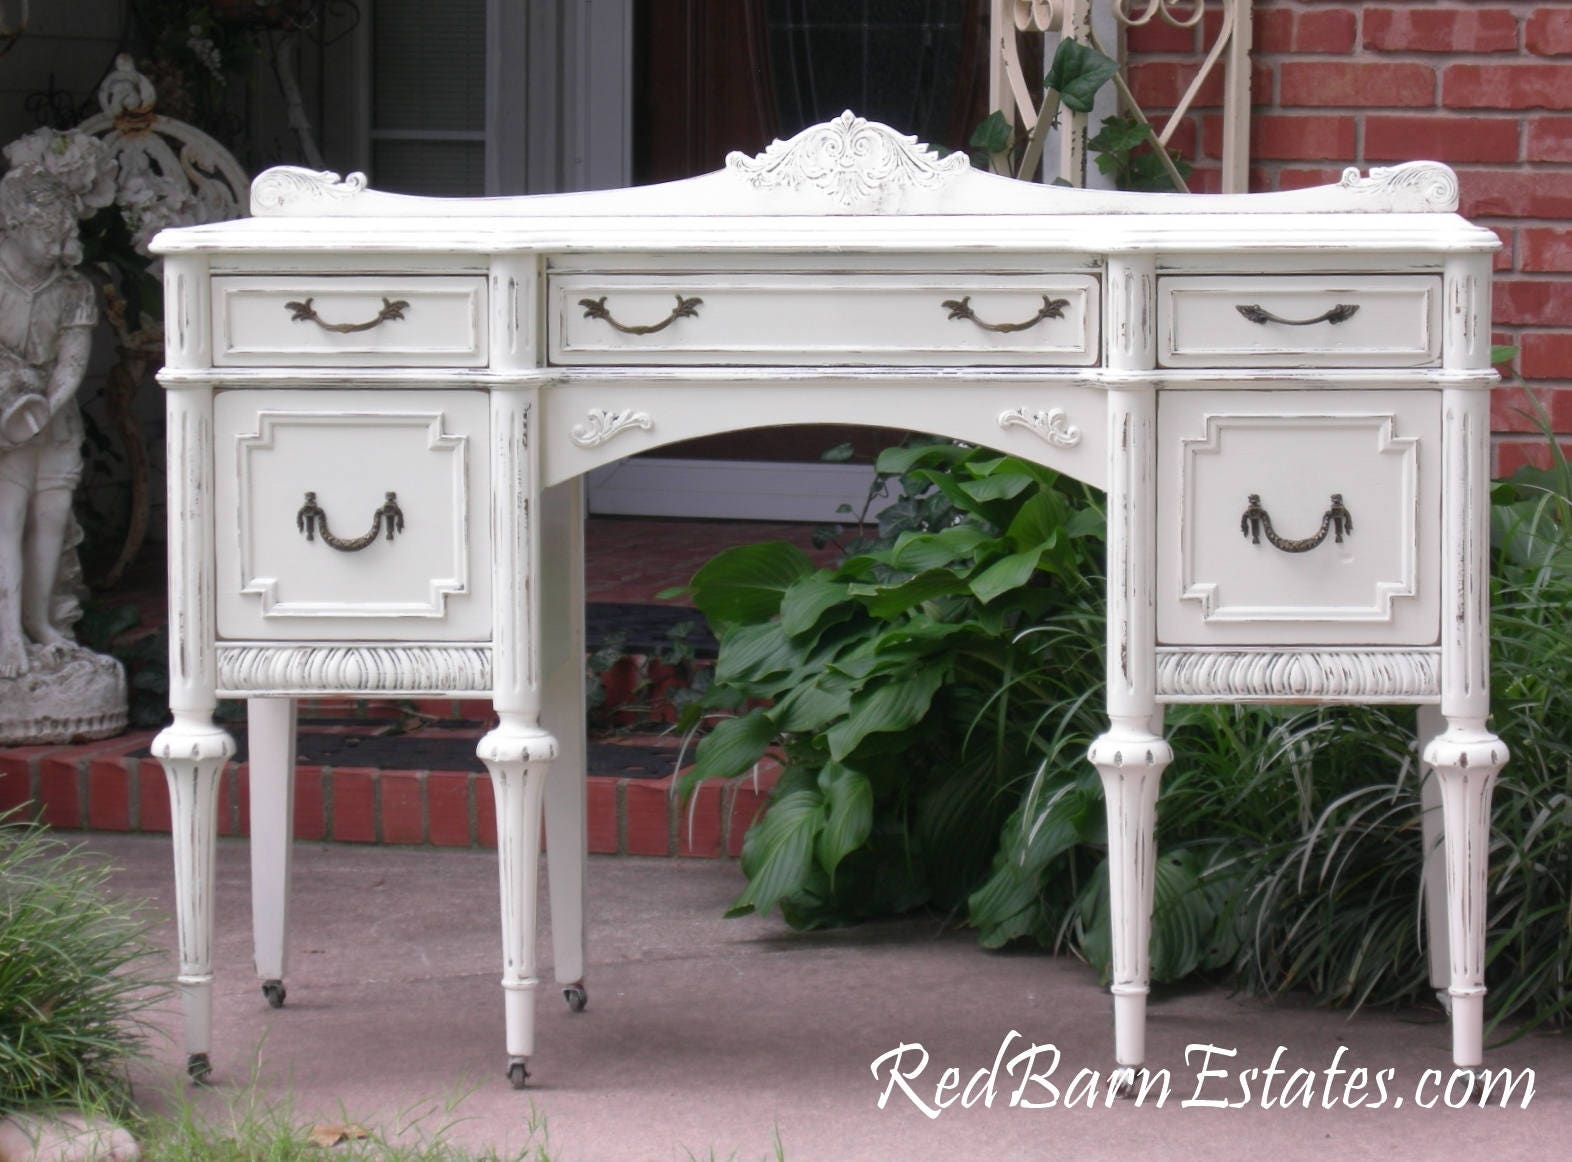 ANTIQUE DESK Custom Order Your Own Painted To Order The Shabby Chic  Furniture Shabby Desk Antique Desk Painted Desk - ANTIQUE DESK Custom Order Your Own Painted To Order The Shabby Chic